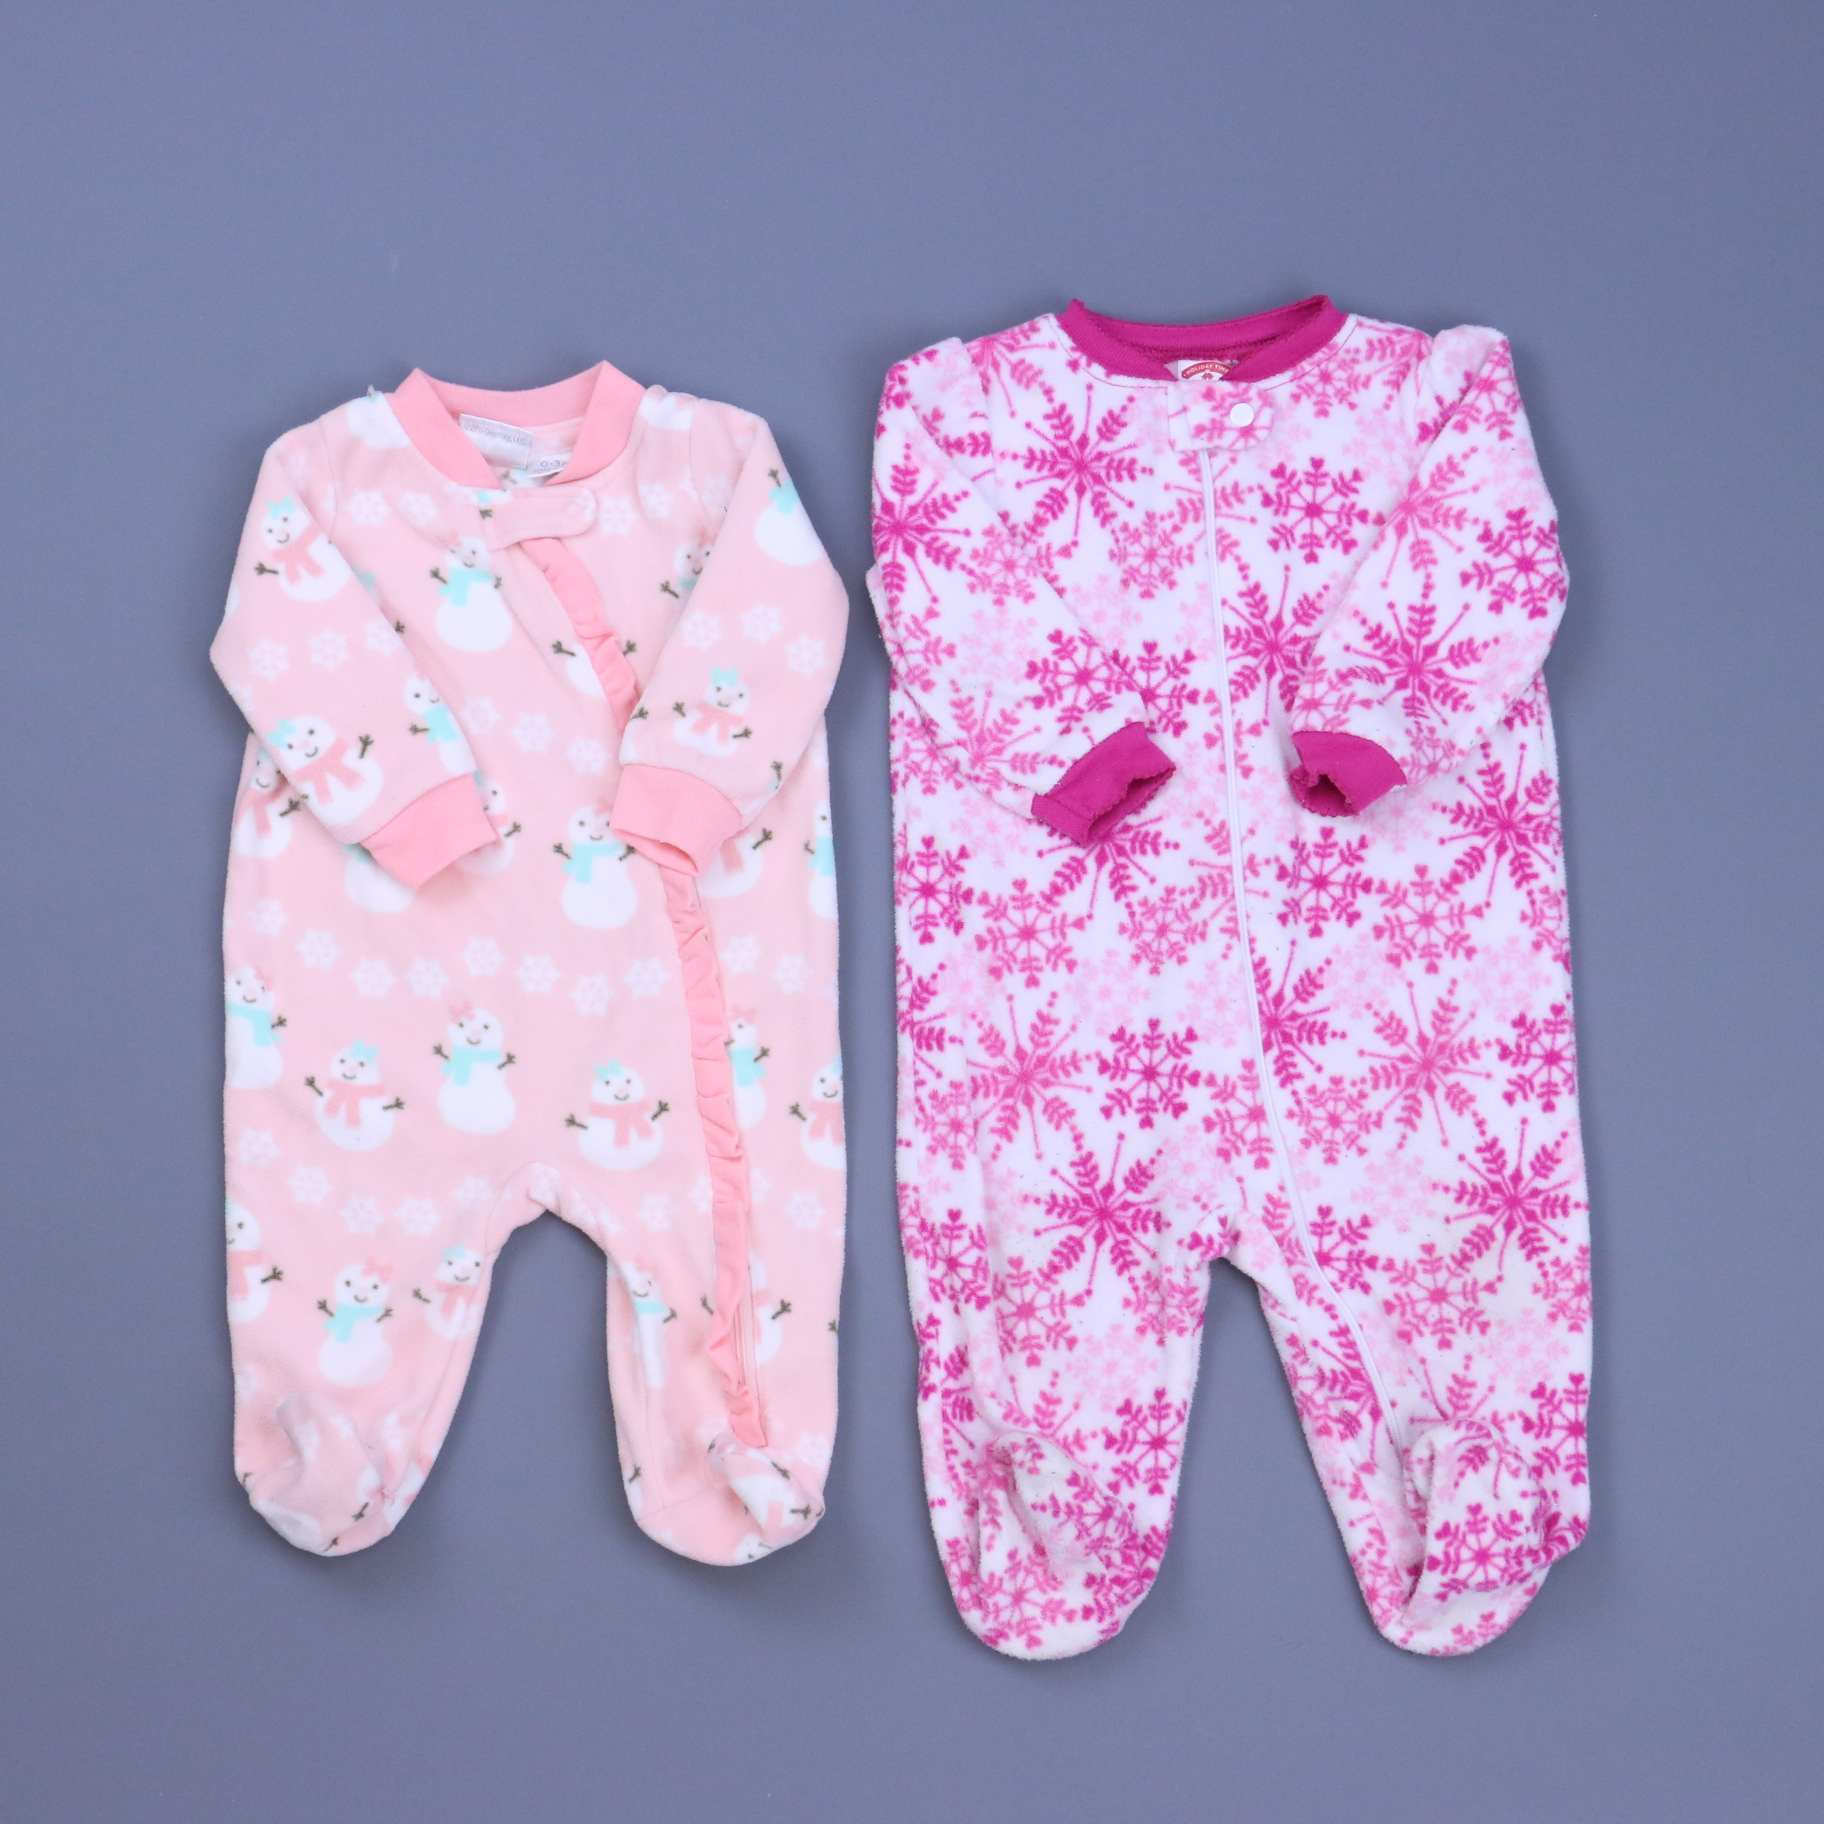 Infant girls size 6 month nwt fleece footed  holiday pajamas